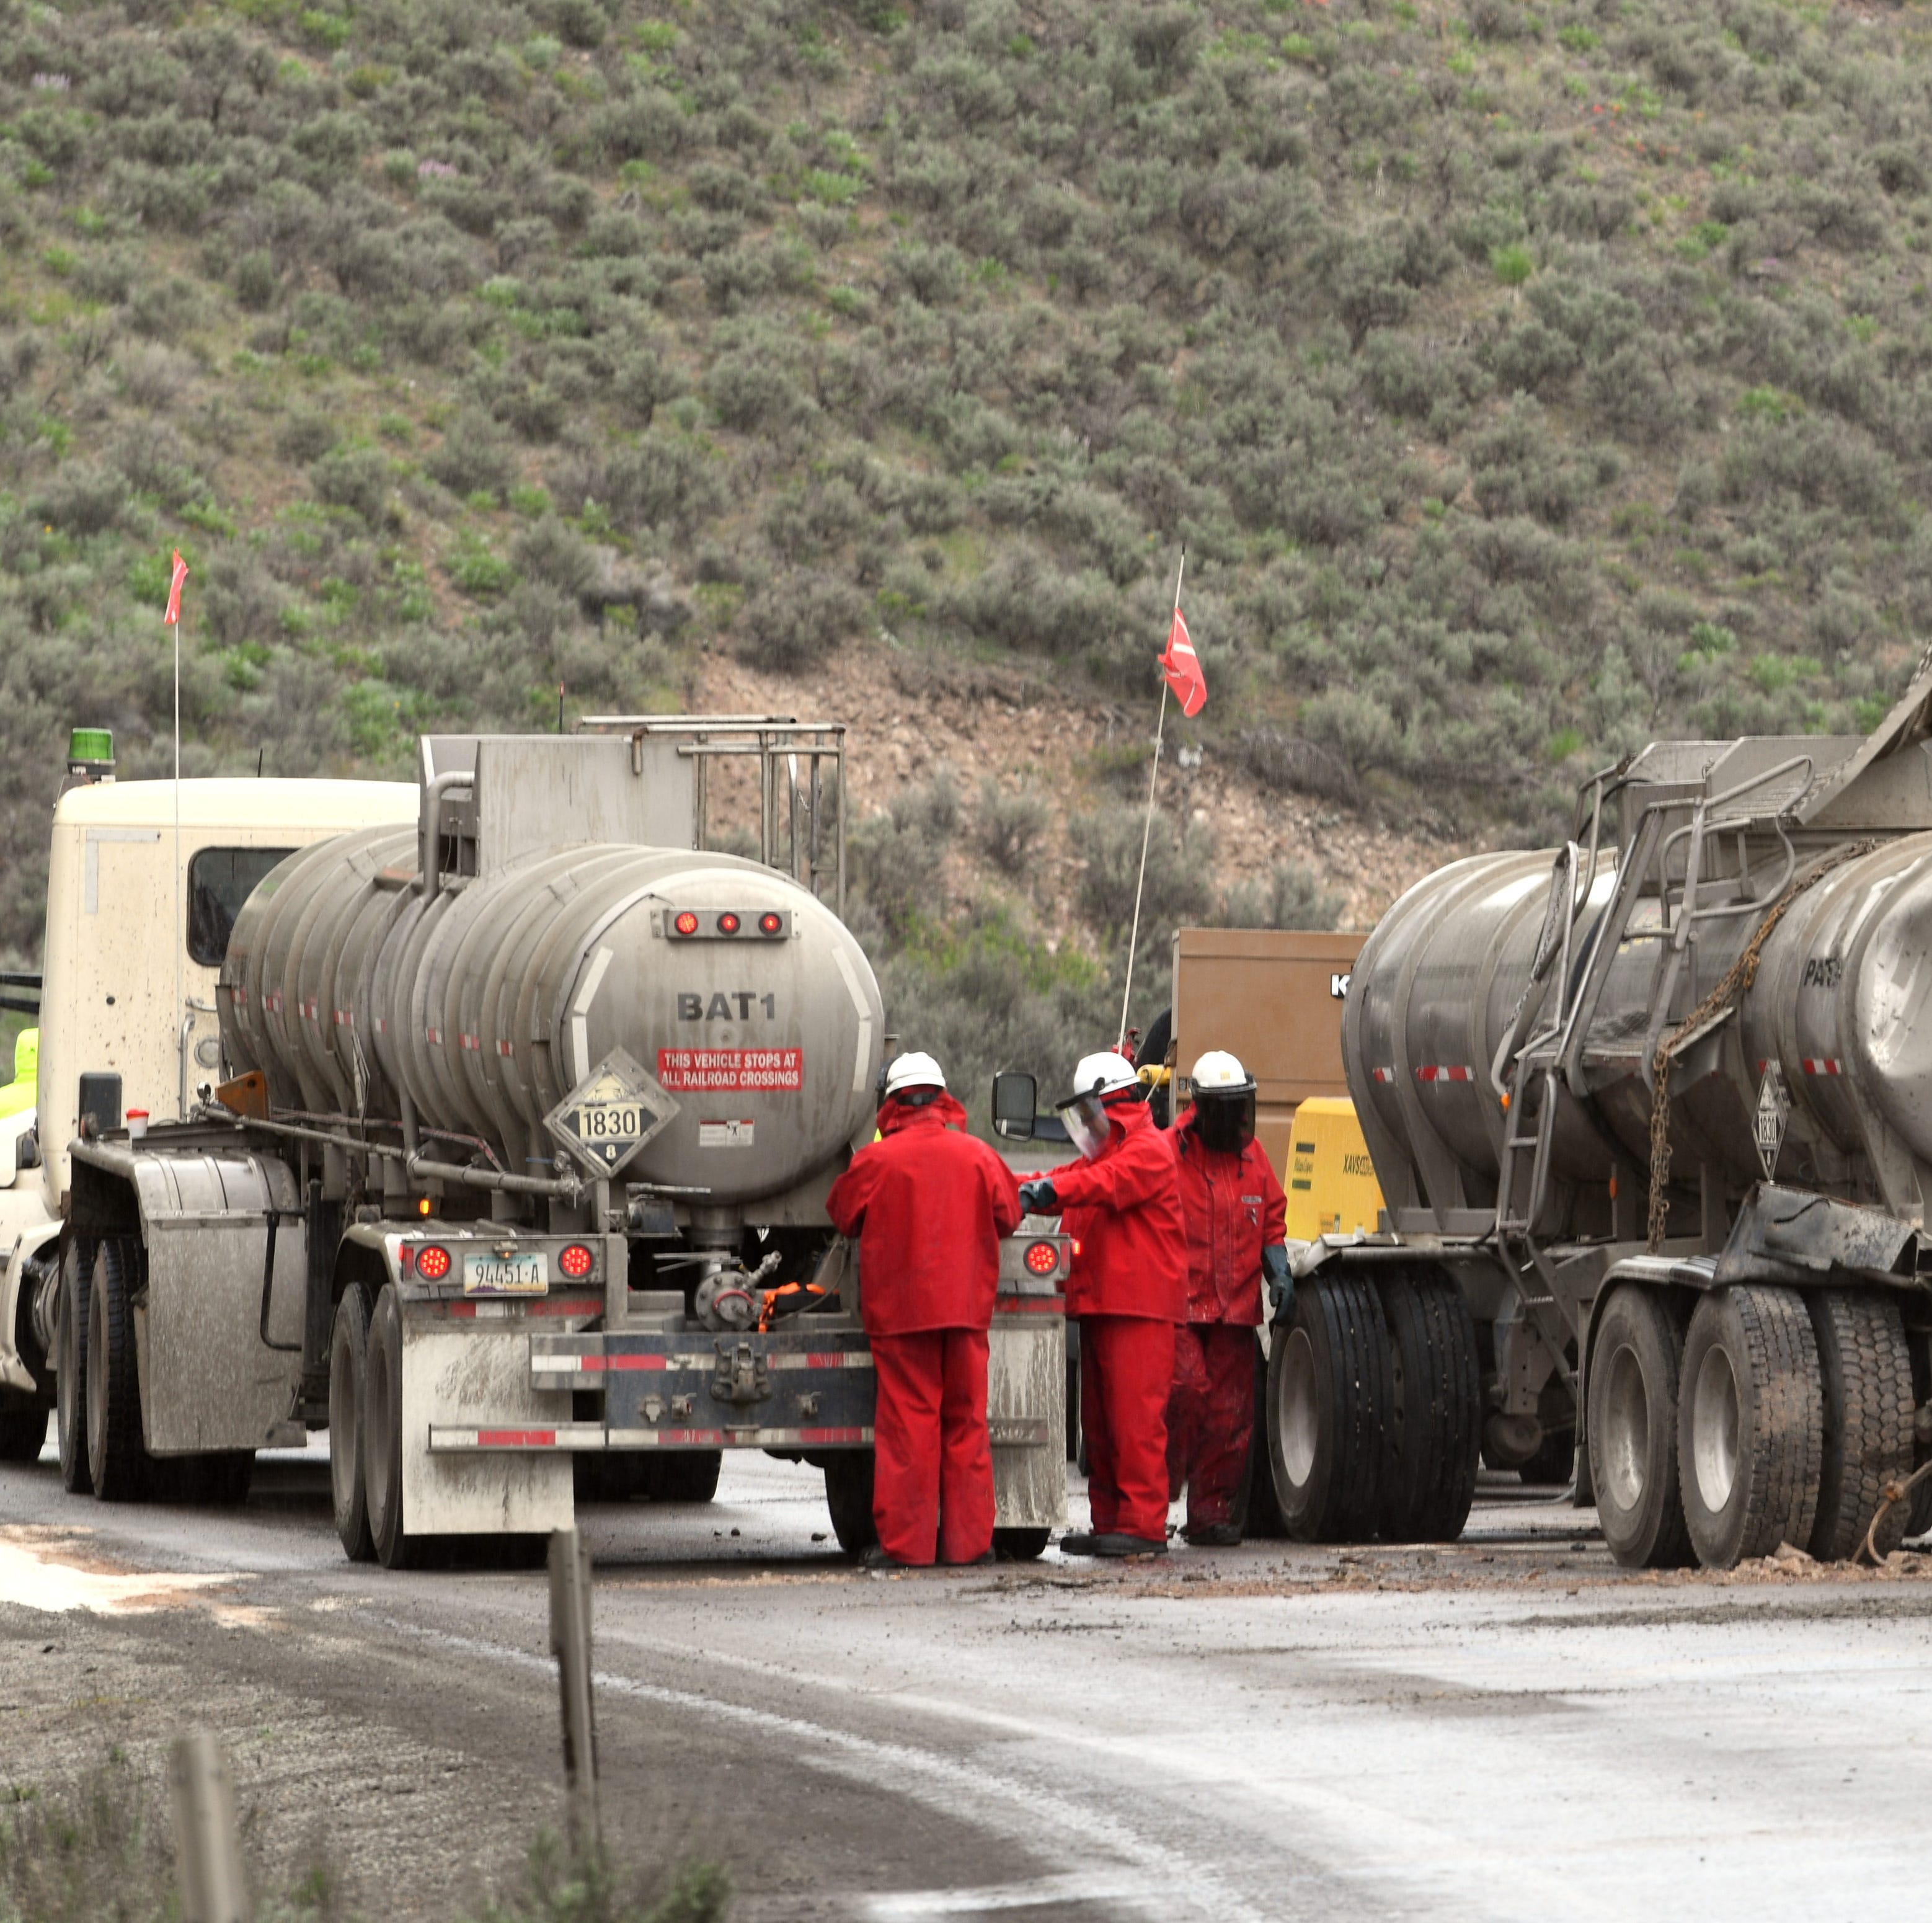 Tanker crash spills 3,000 gallons of sulfuric acid into Nevada creek